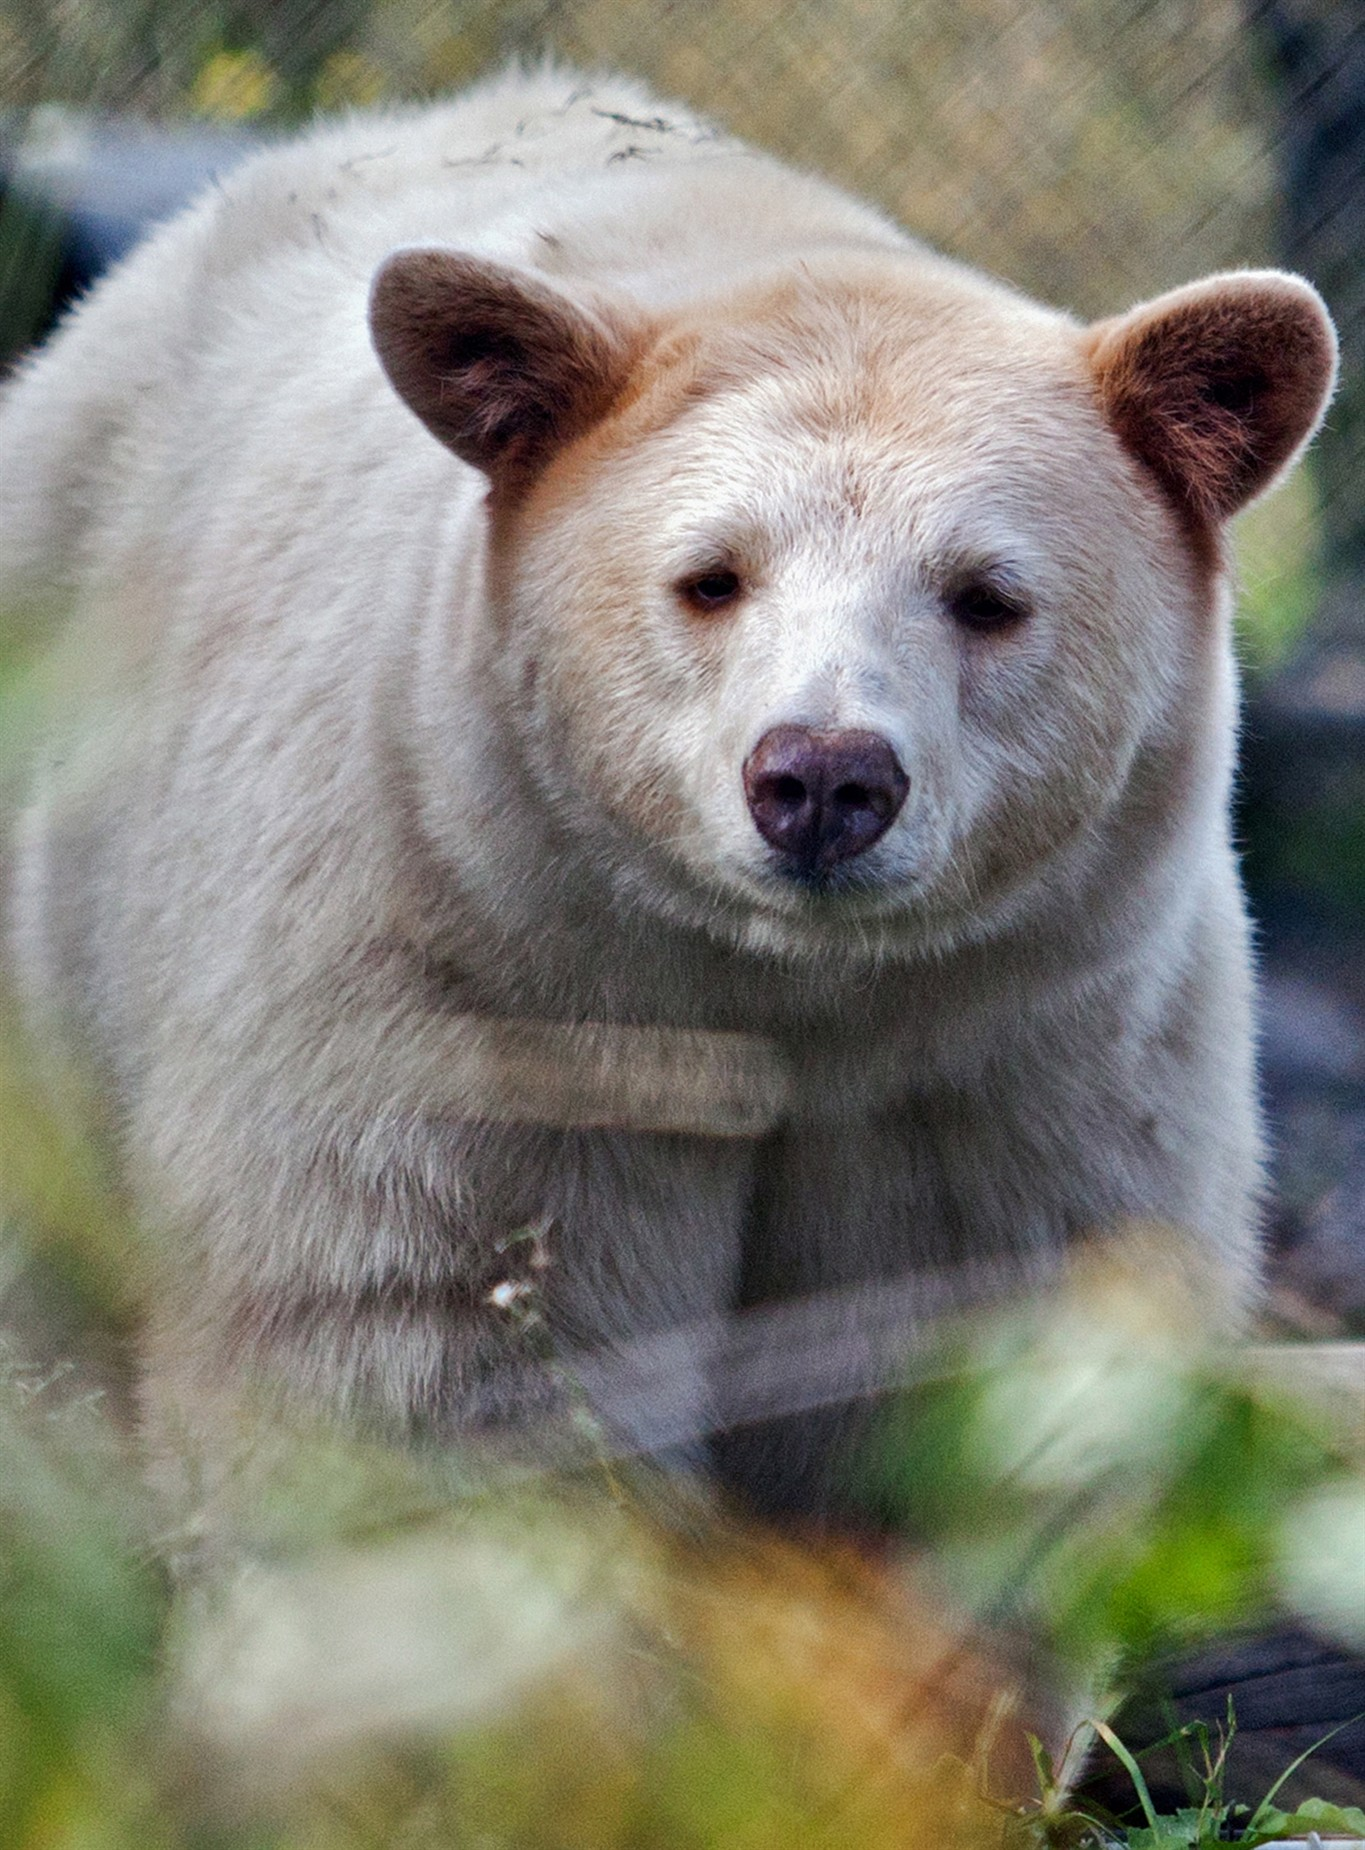 Clover The Kermode Will Soon Be Exploring His New Enclosure At BC Wildlife Park In Kamloops Spirit Bear Became Habituated To Humans As A Cub And